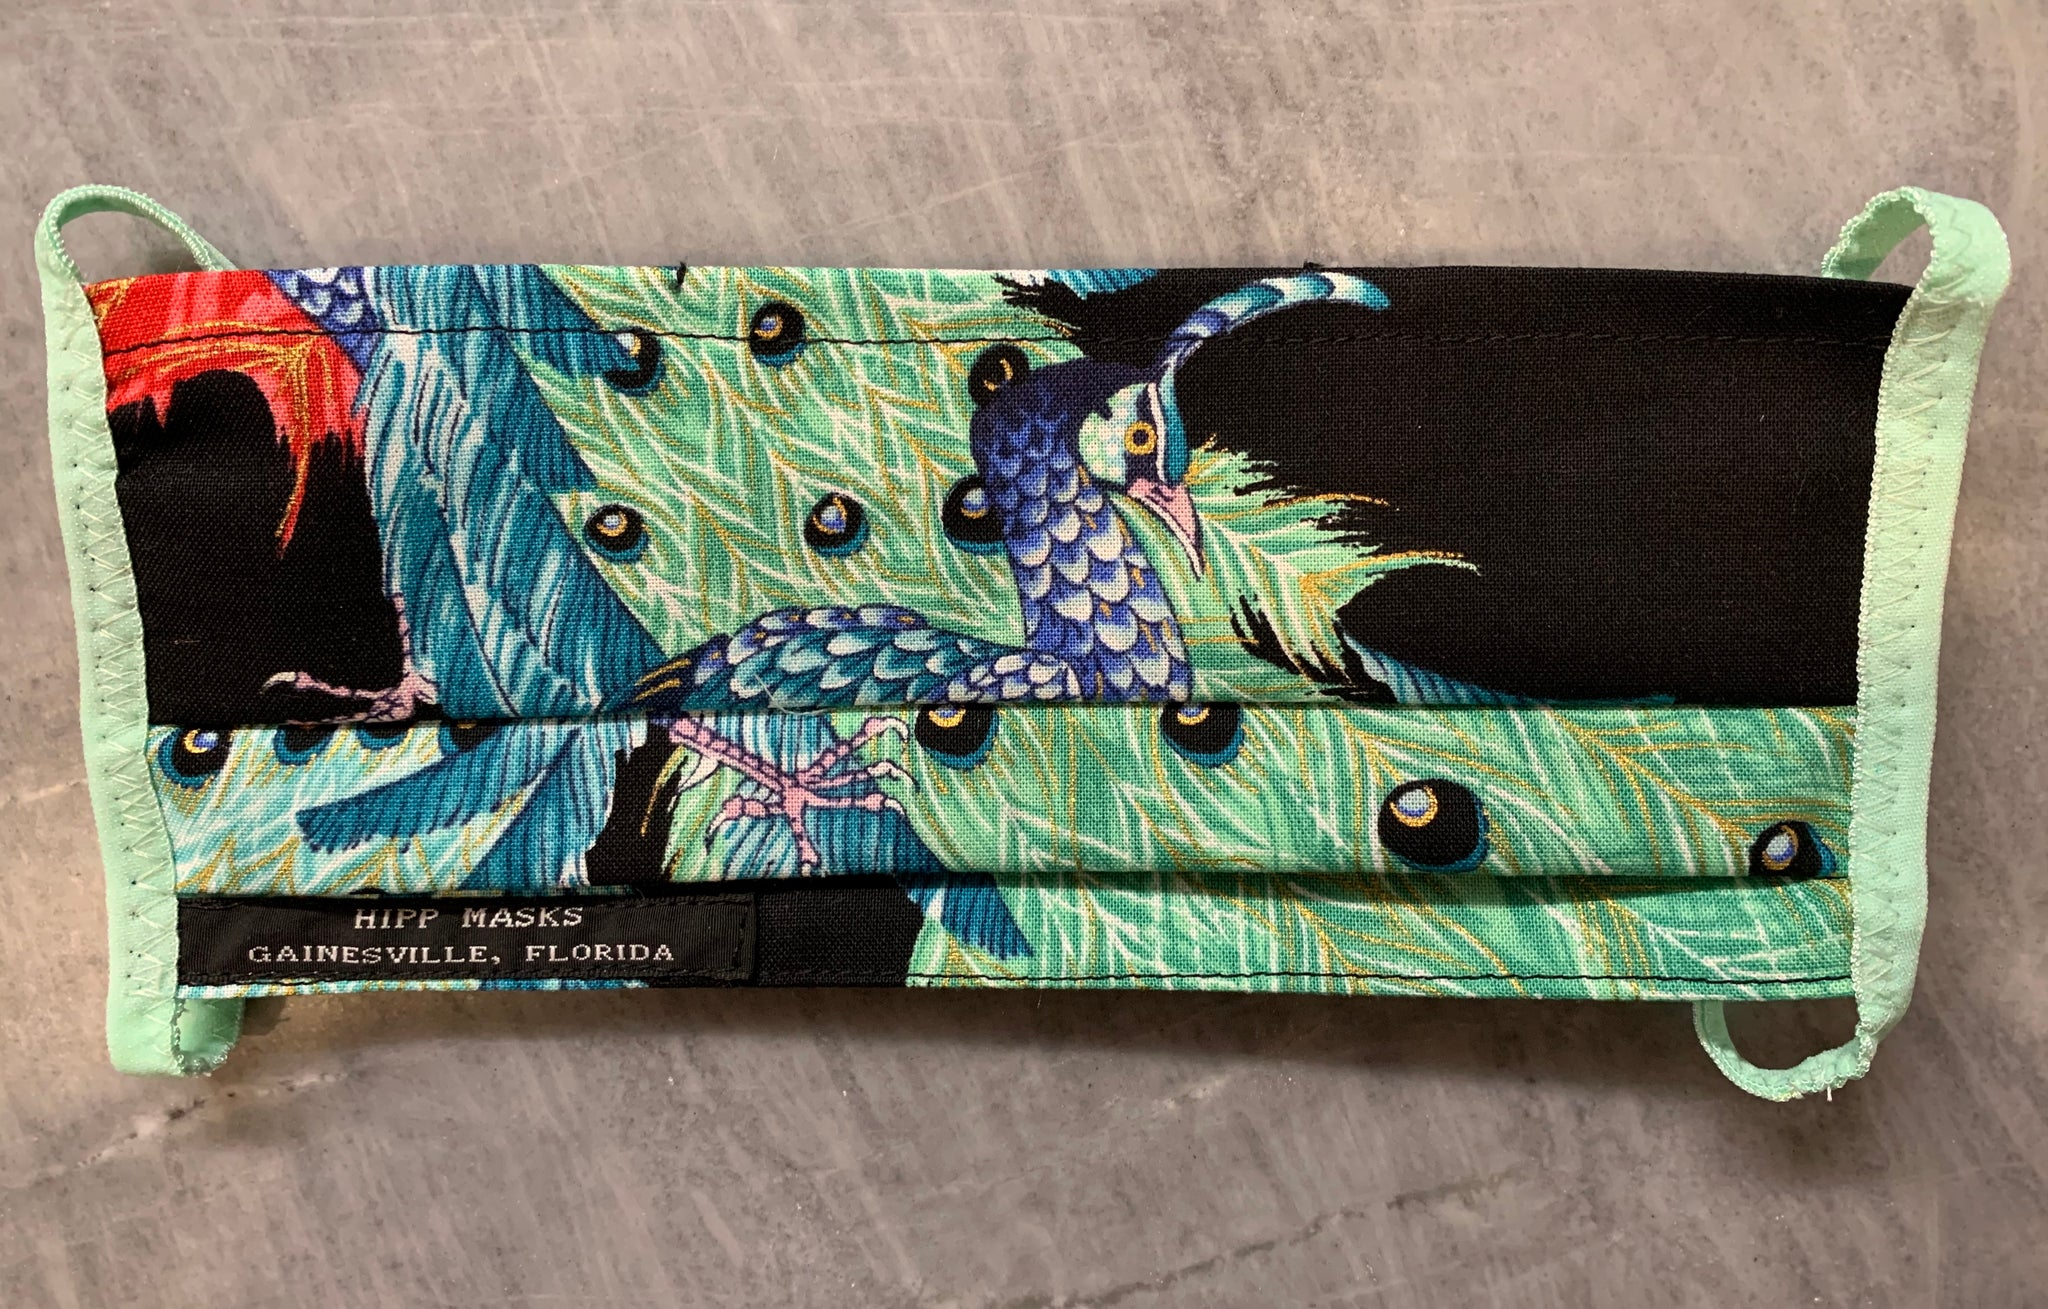 Santa Fe Zoo: Black Peacock Print with Black or Pale Green Foldover Elastic for Ears